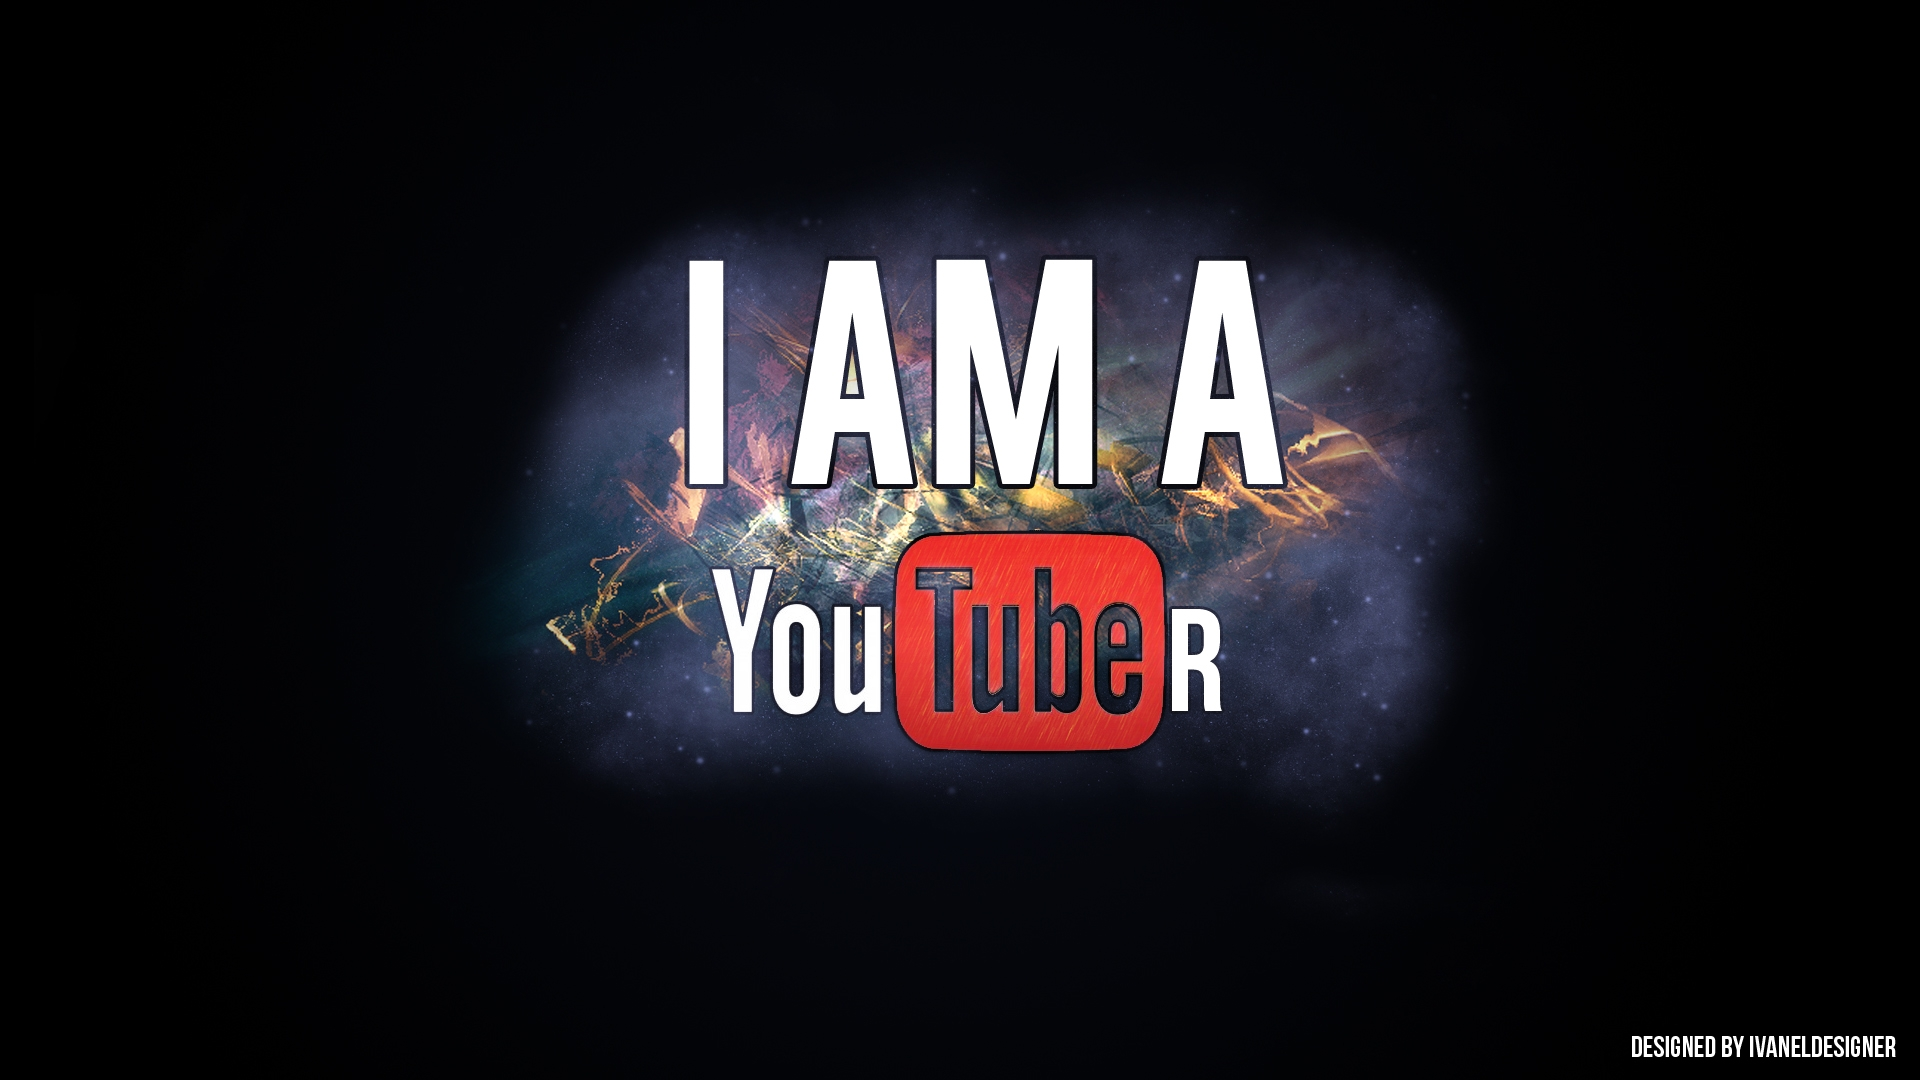 download Wallpaper IM A YOUTUBER by ivaneldeming [1920x1080 1920x1080